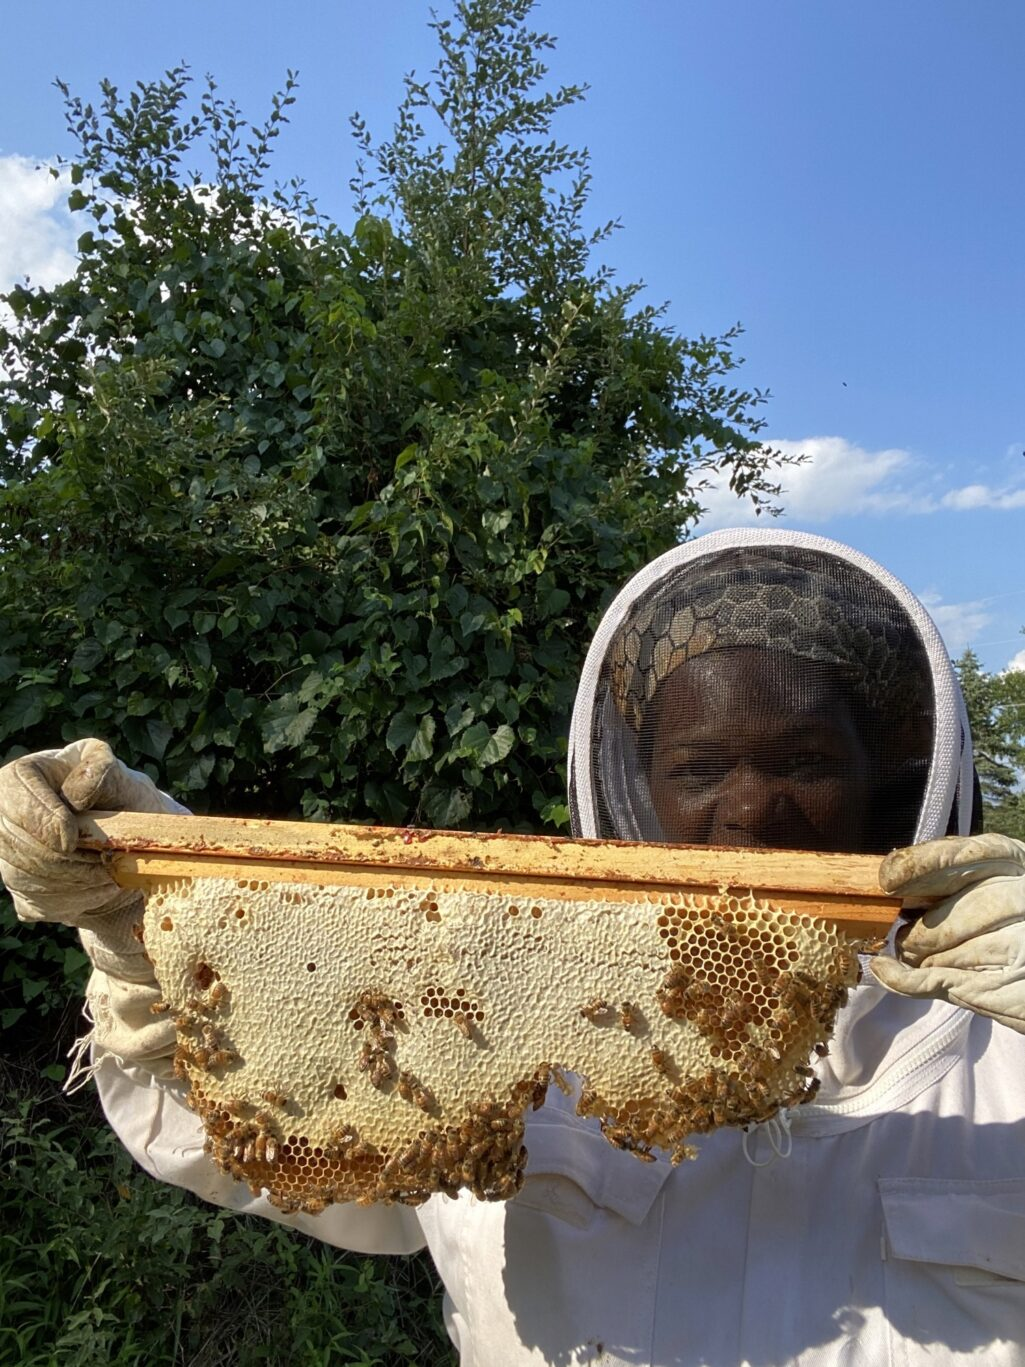 Tameeka holding a frame of bees and honey.